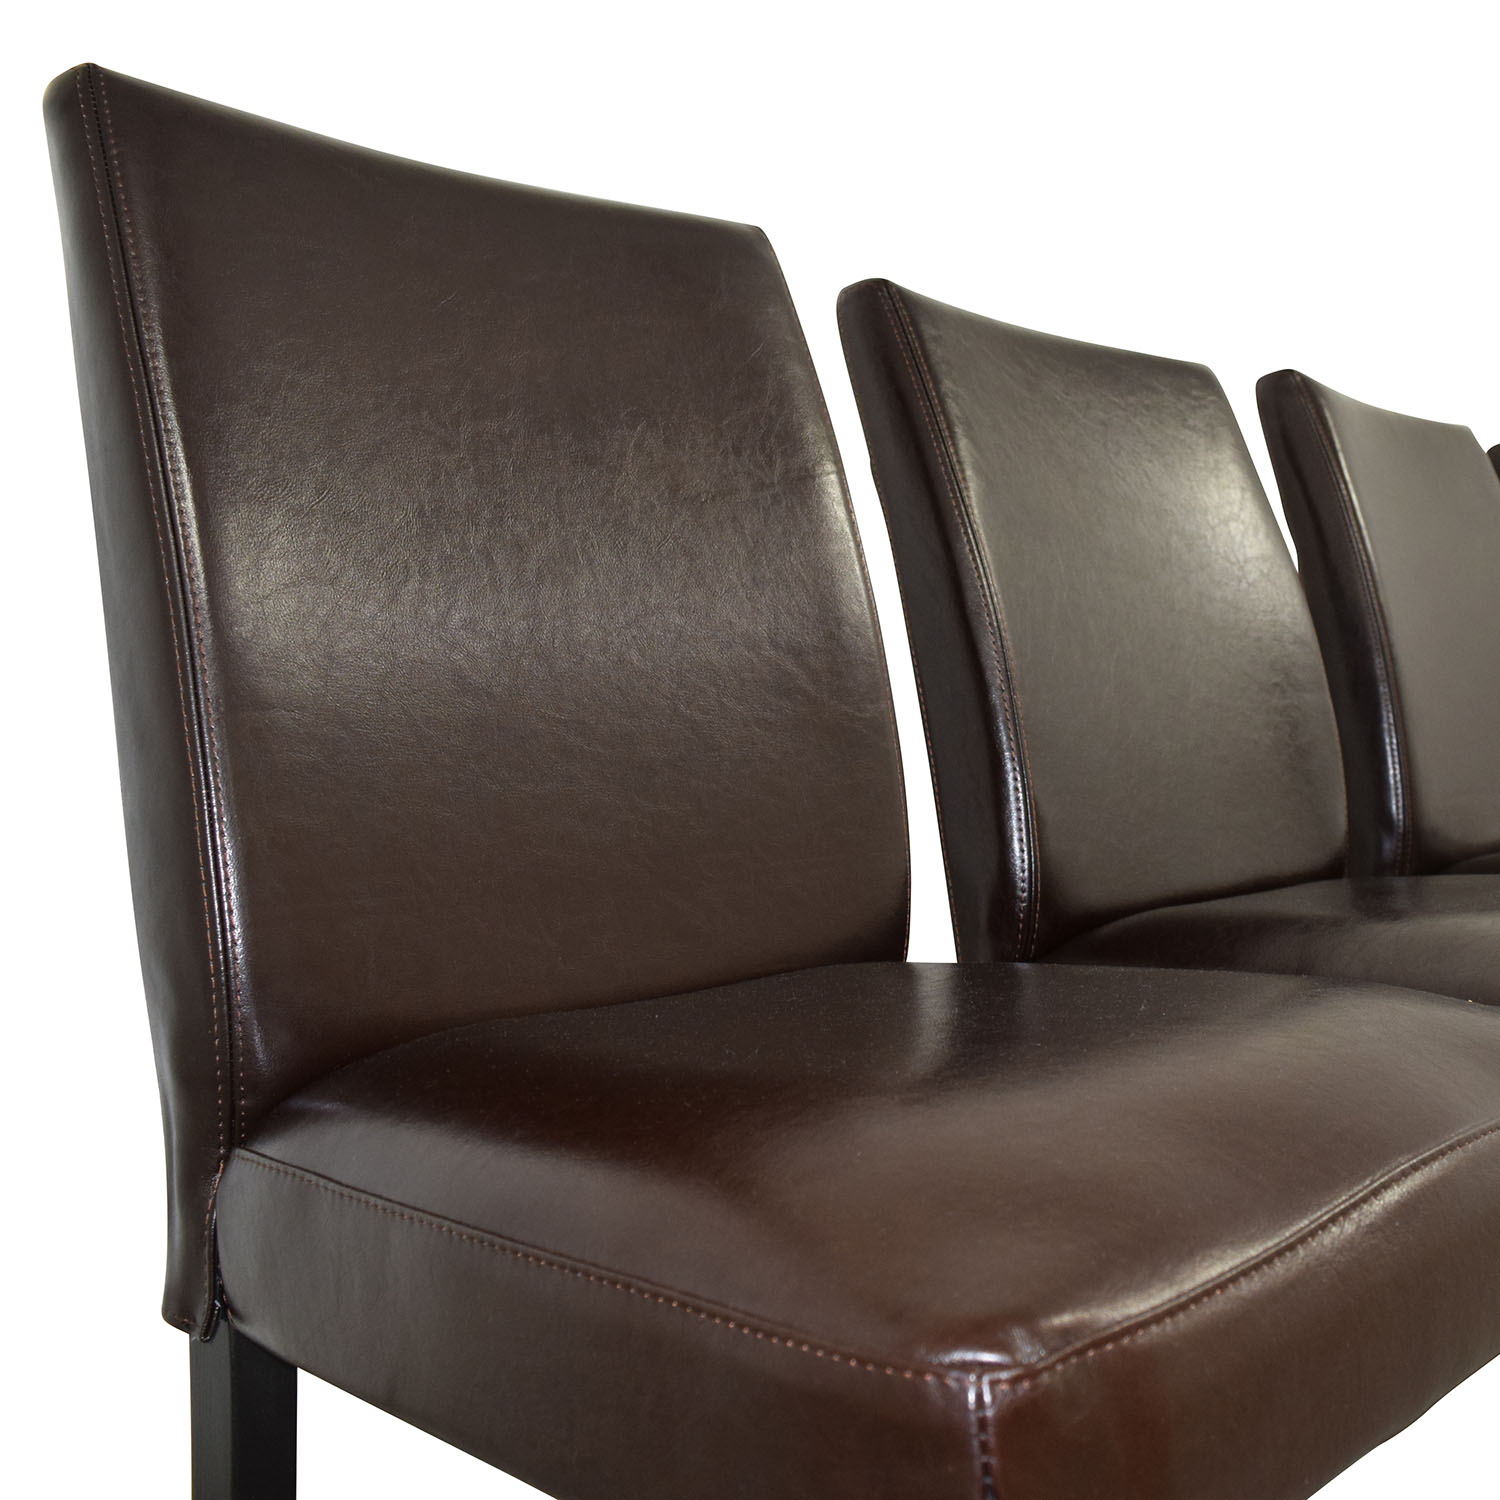 chocolate leather dining chairs white french chair 69 off ikea brown